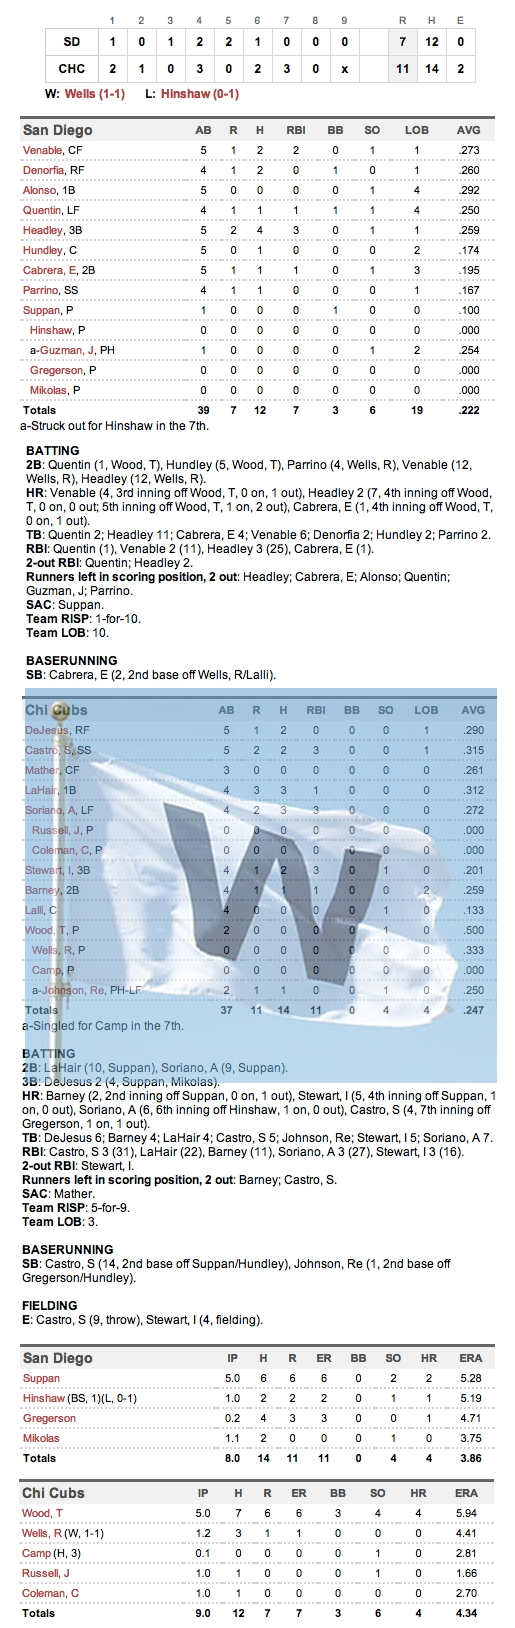 Enhanced Box Score: Padres 7, Cubs 11 – May 28, 2012